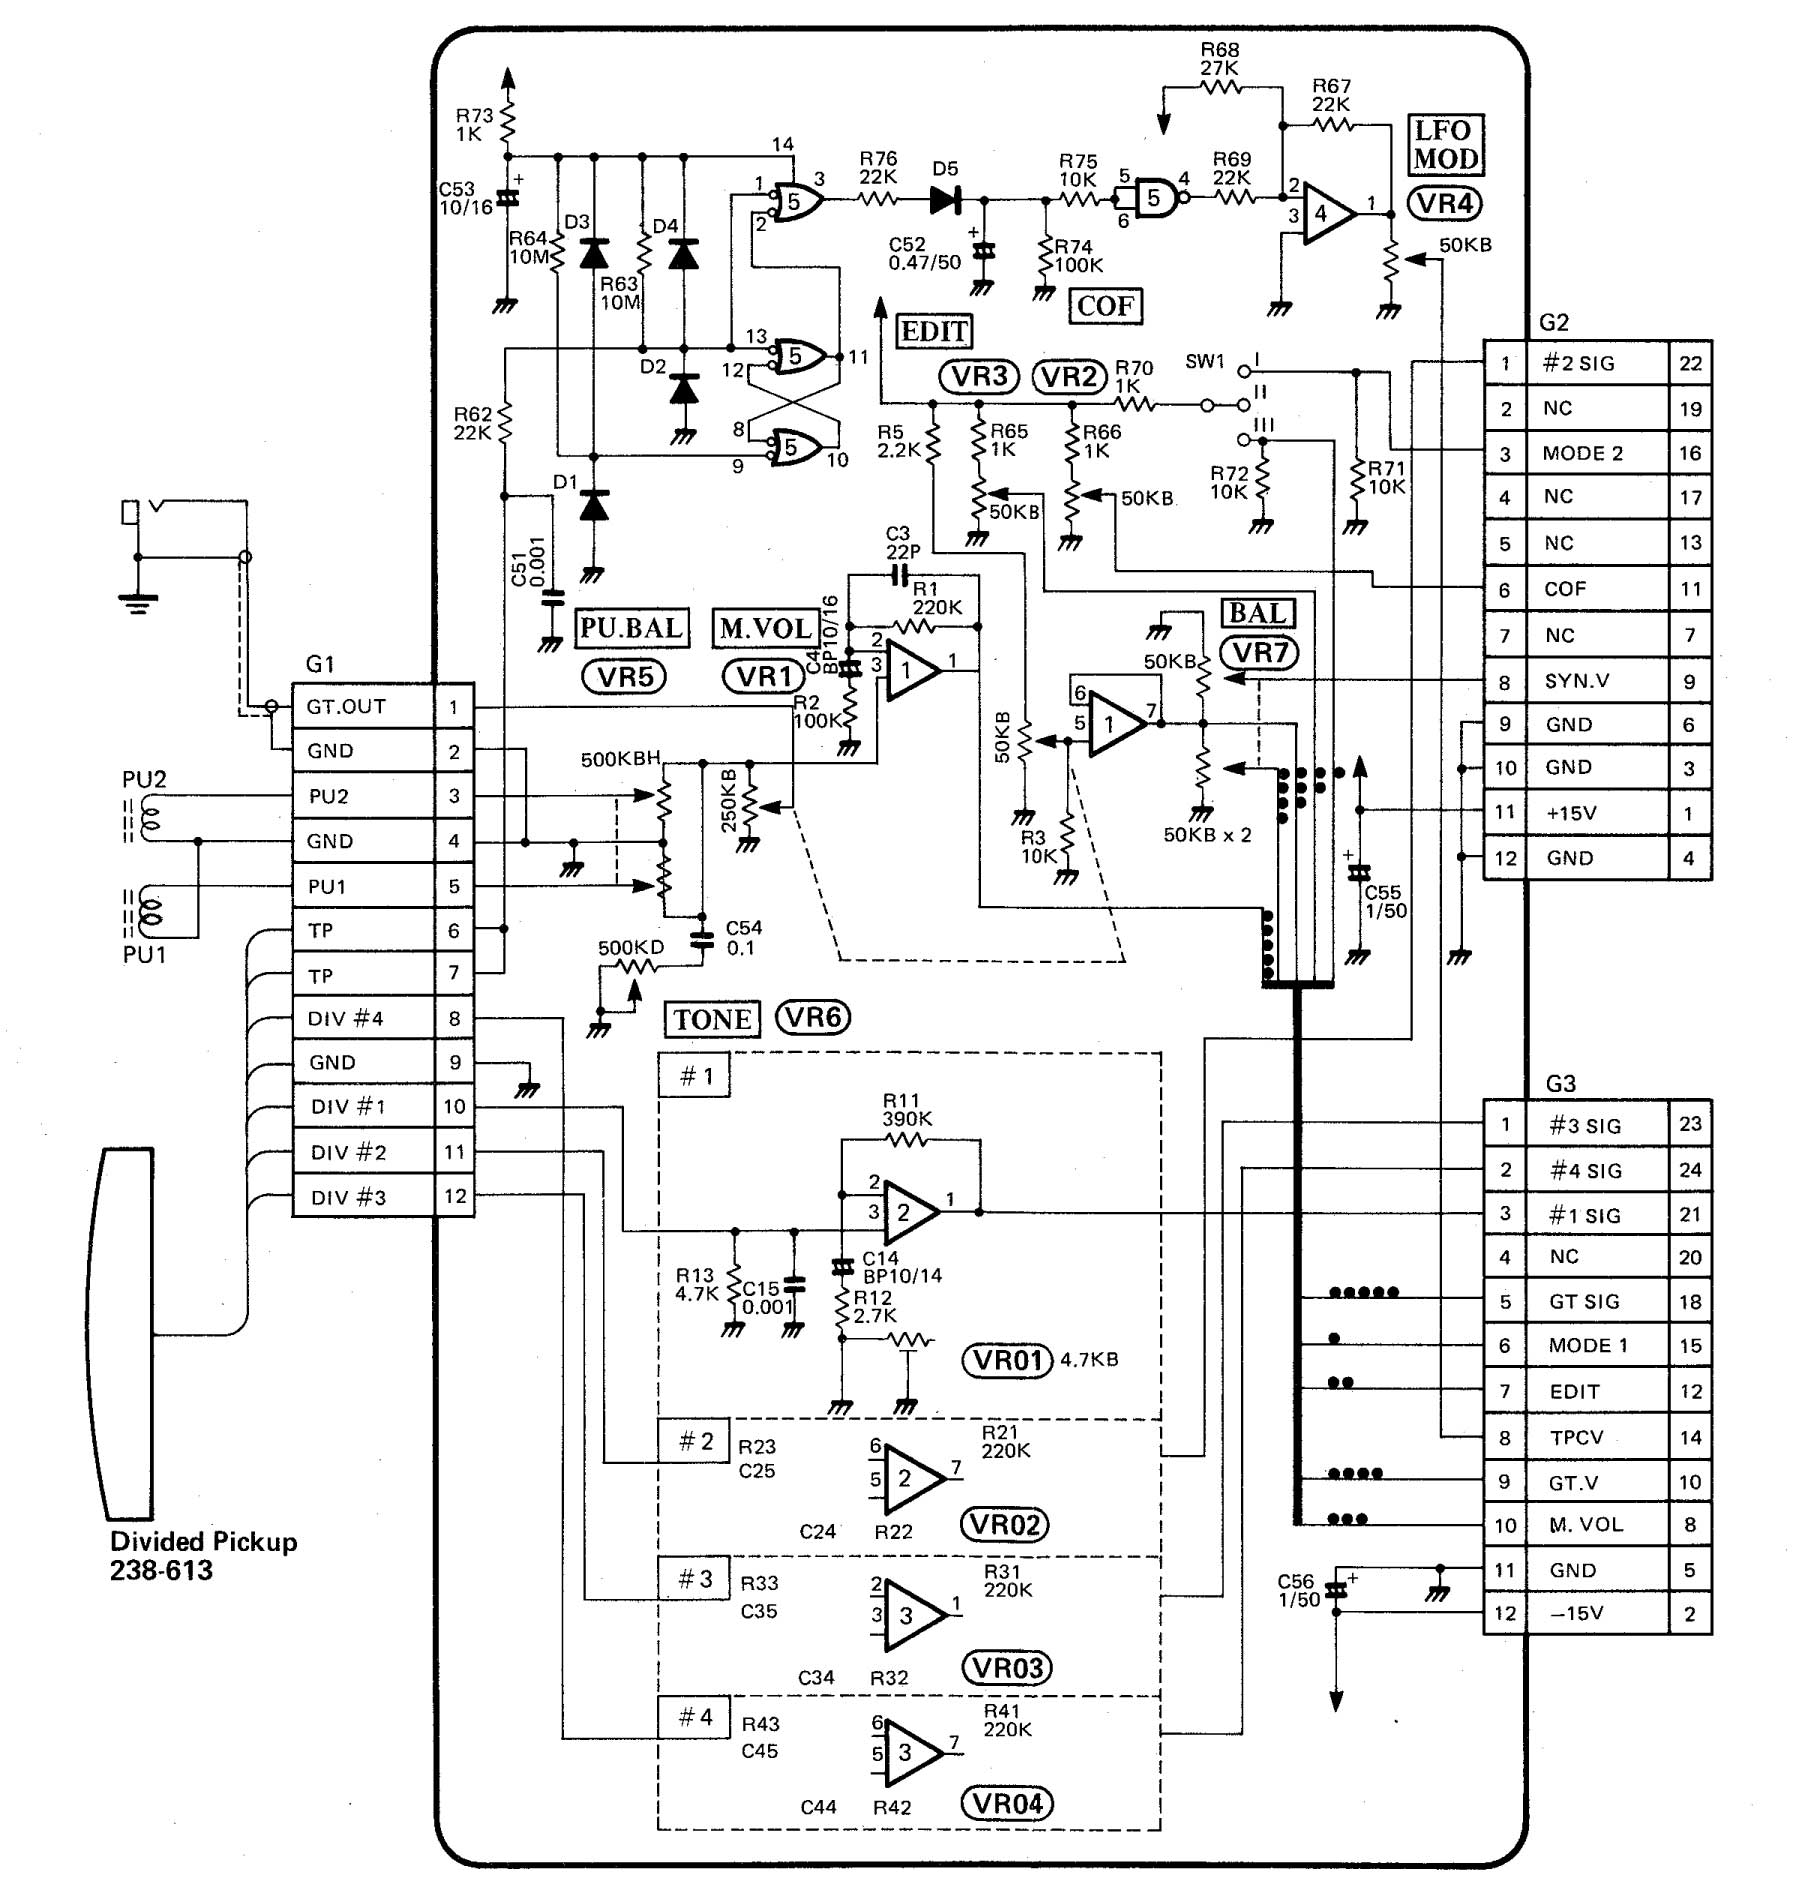 Honda Insight Fuse Box Electrical Wiring Diagrams Wiring Diagram For Free